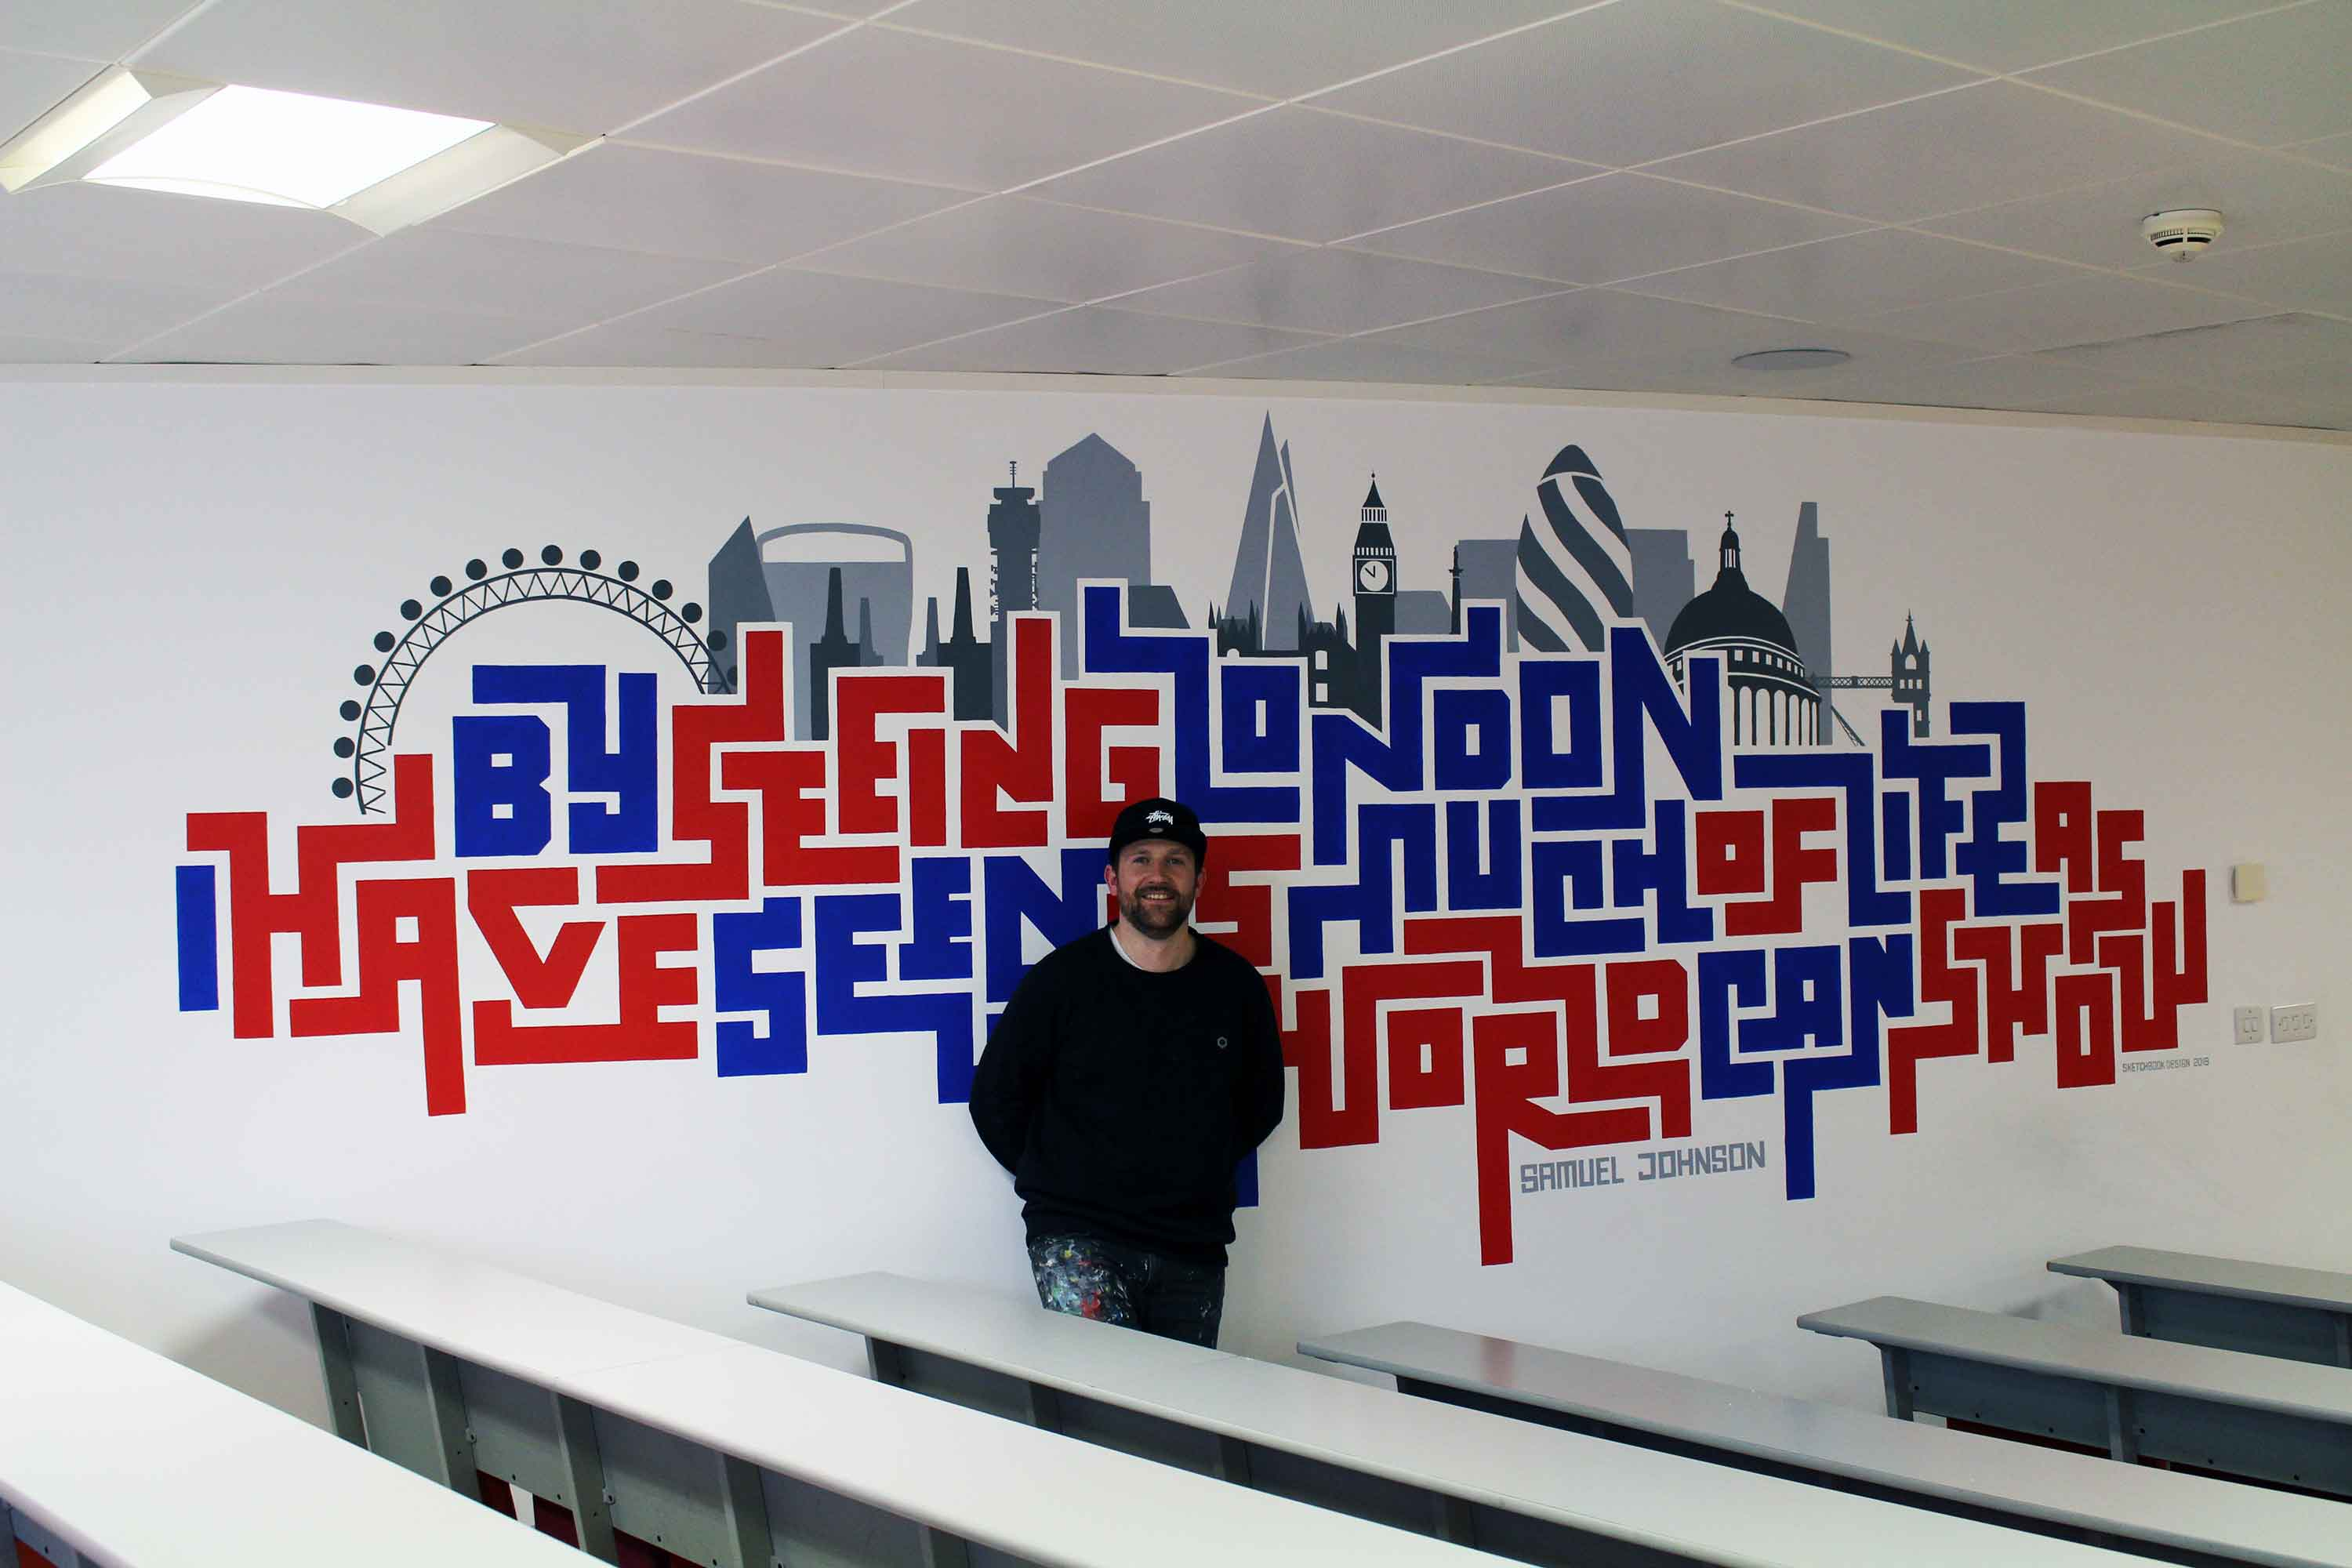 Hand Painted Wall Mural at the University of Sunderland in London